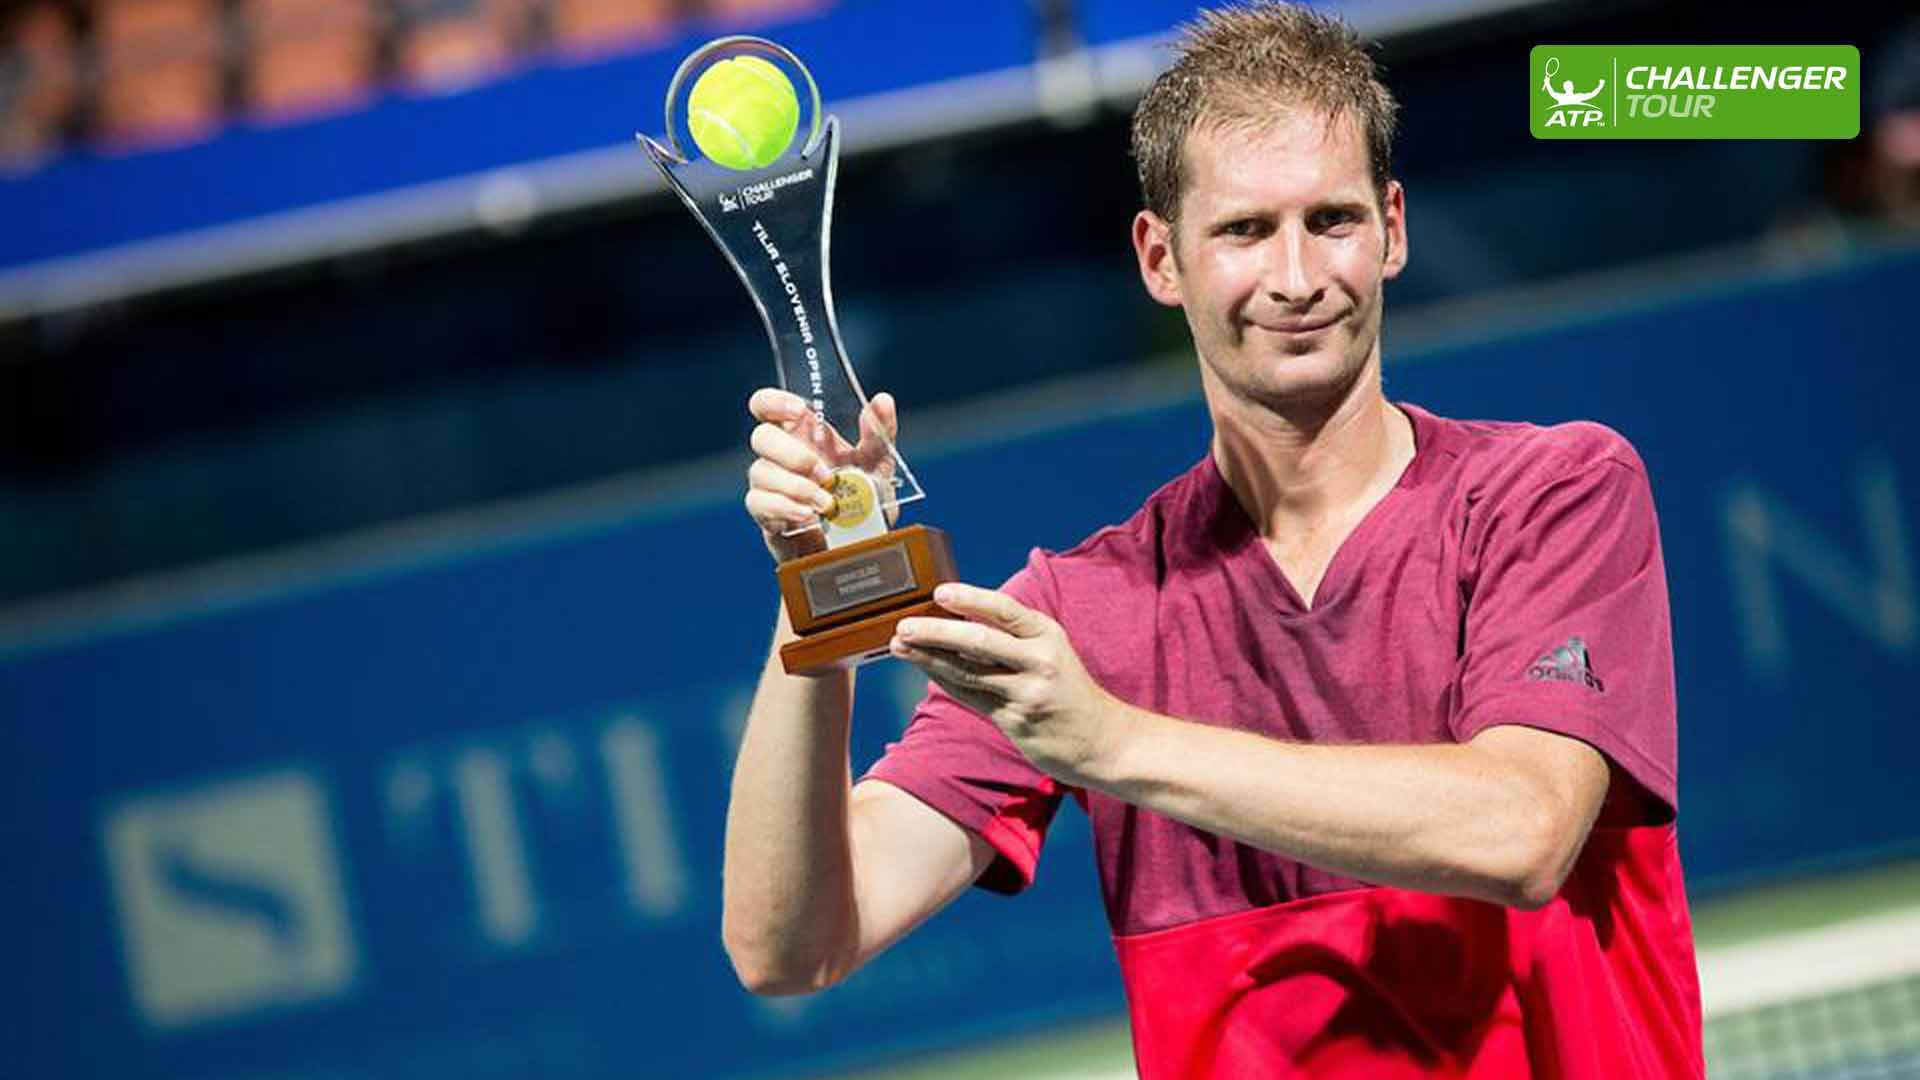 Florian Mayer prevails at the ATP Challenger Tour event in Portoroz.